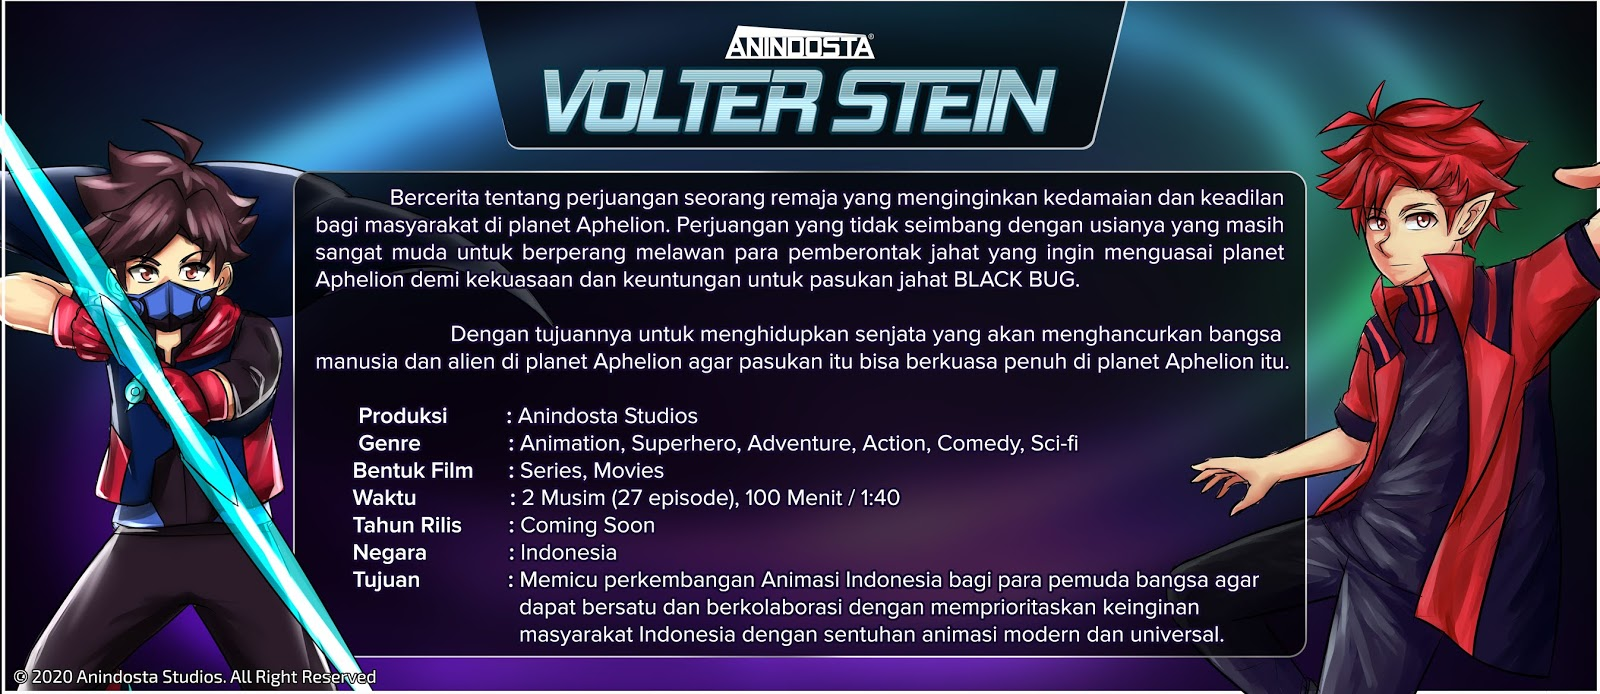 Synopsis of VOLTER STEIN